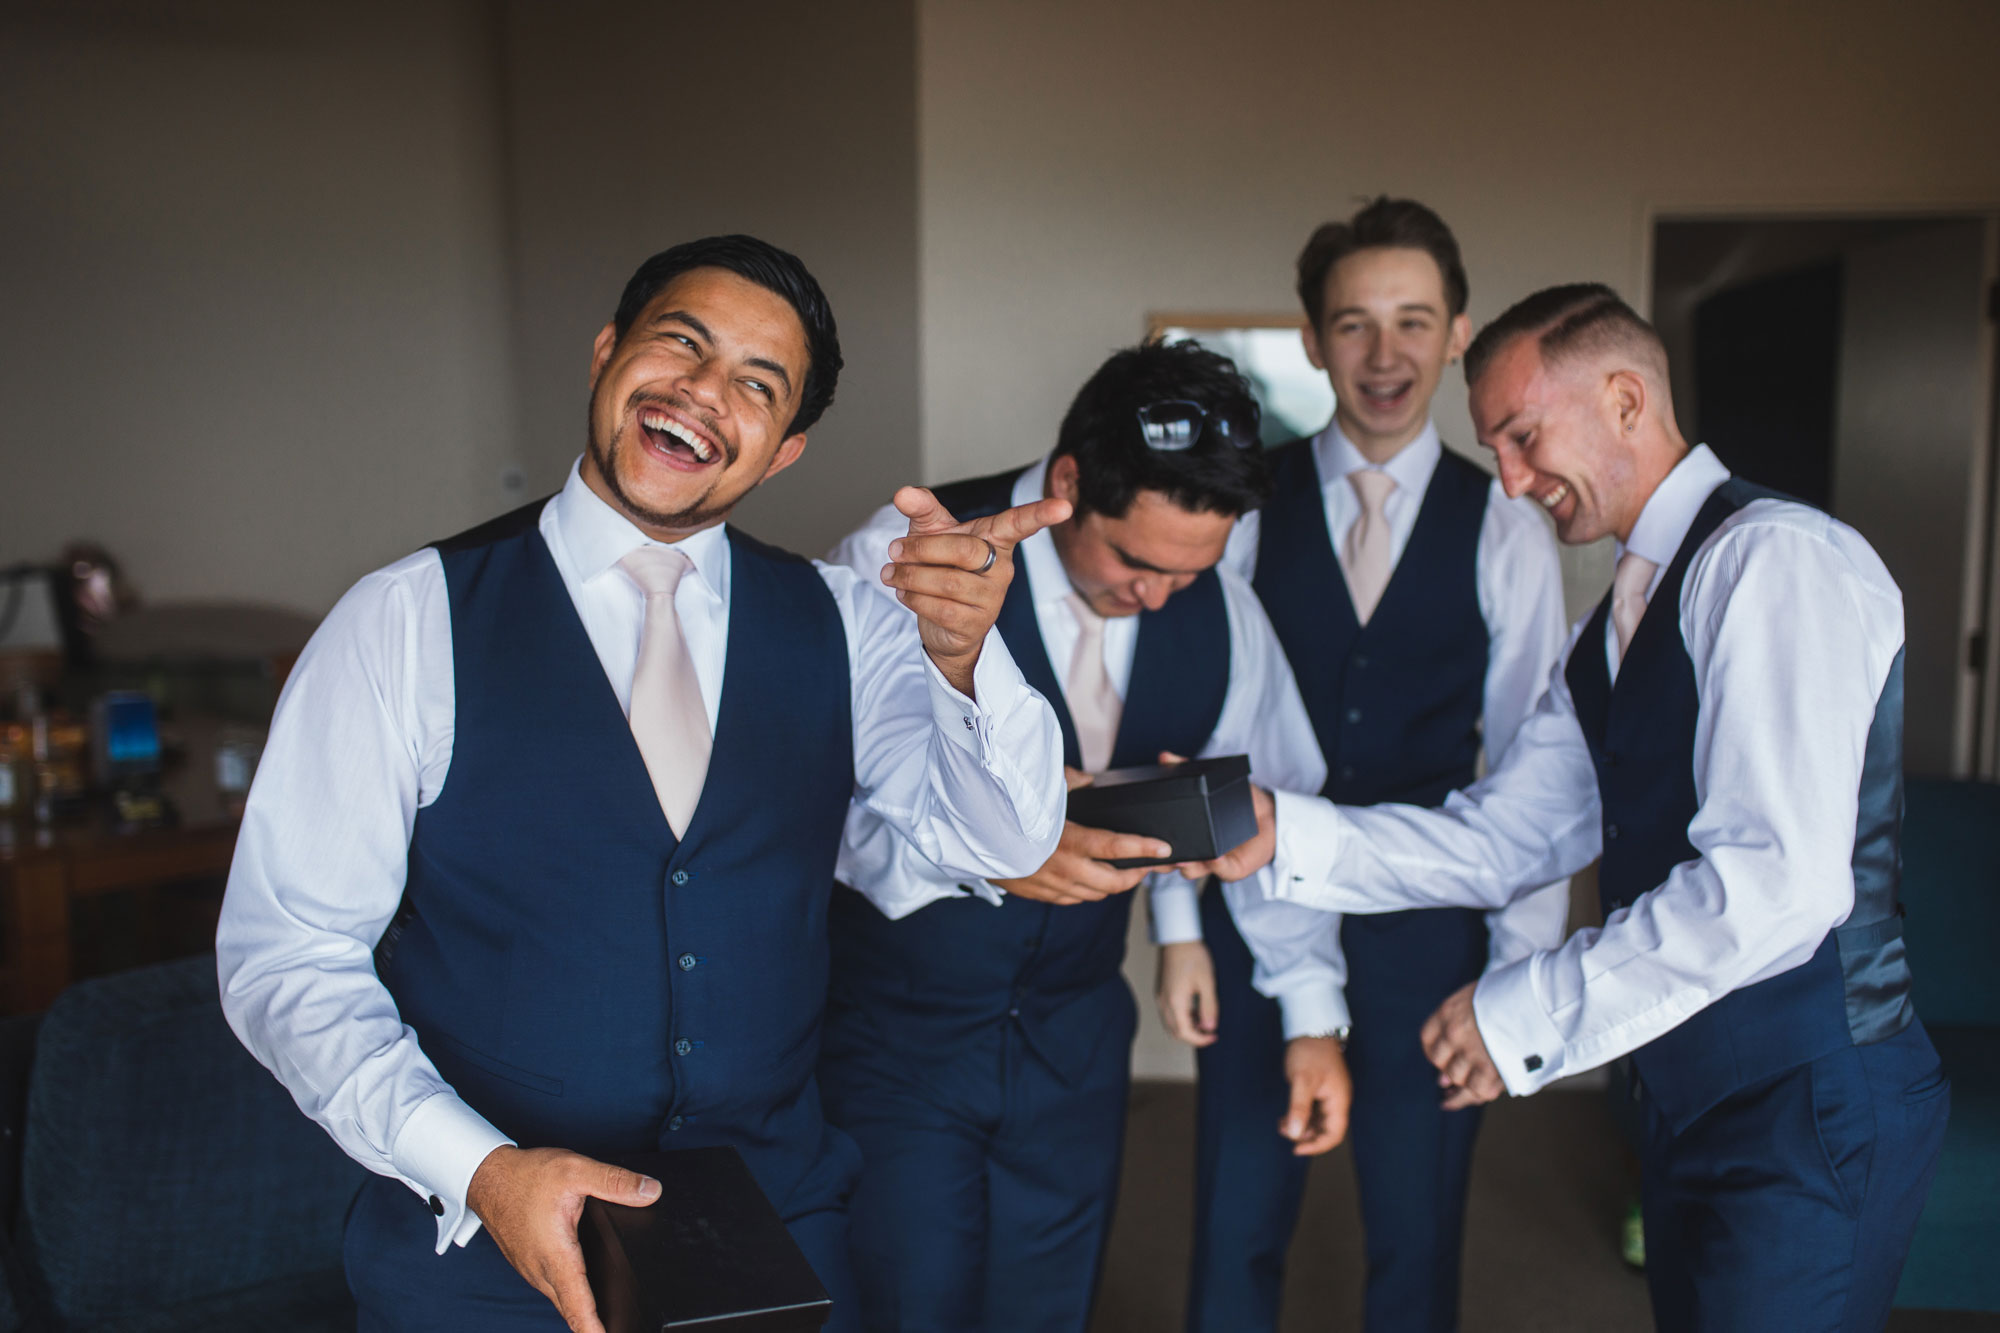 castaways waiuku groomsmen having fun